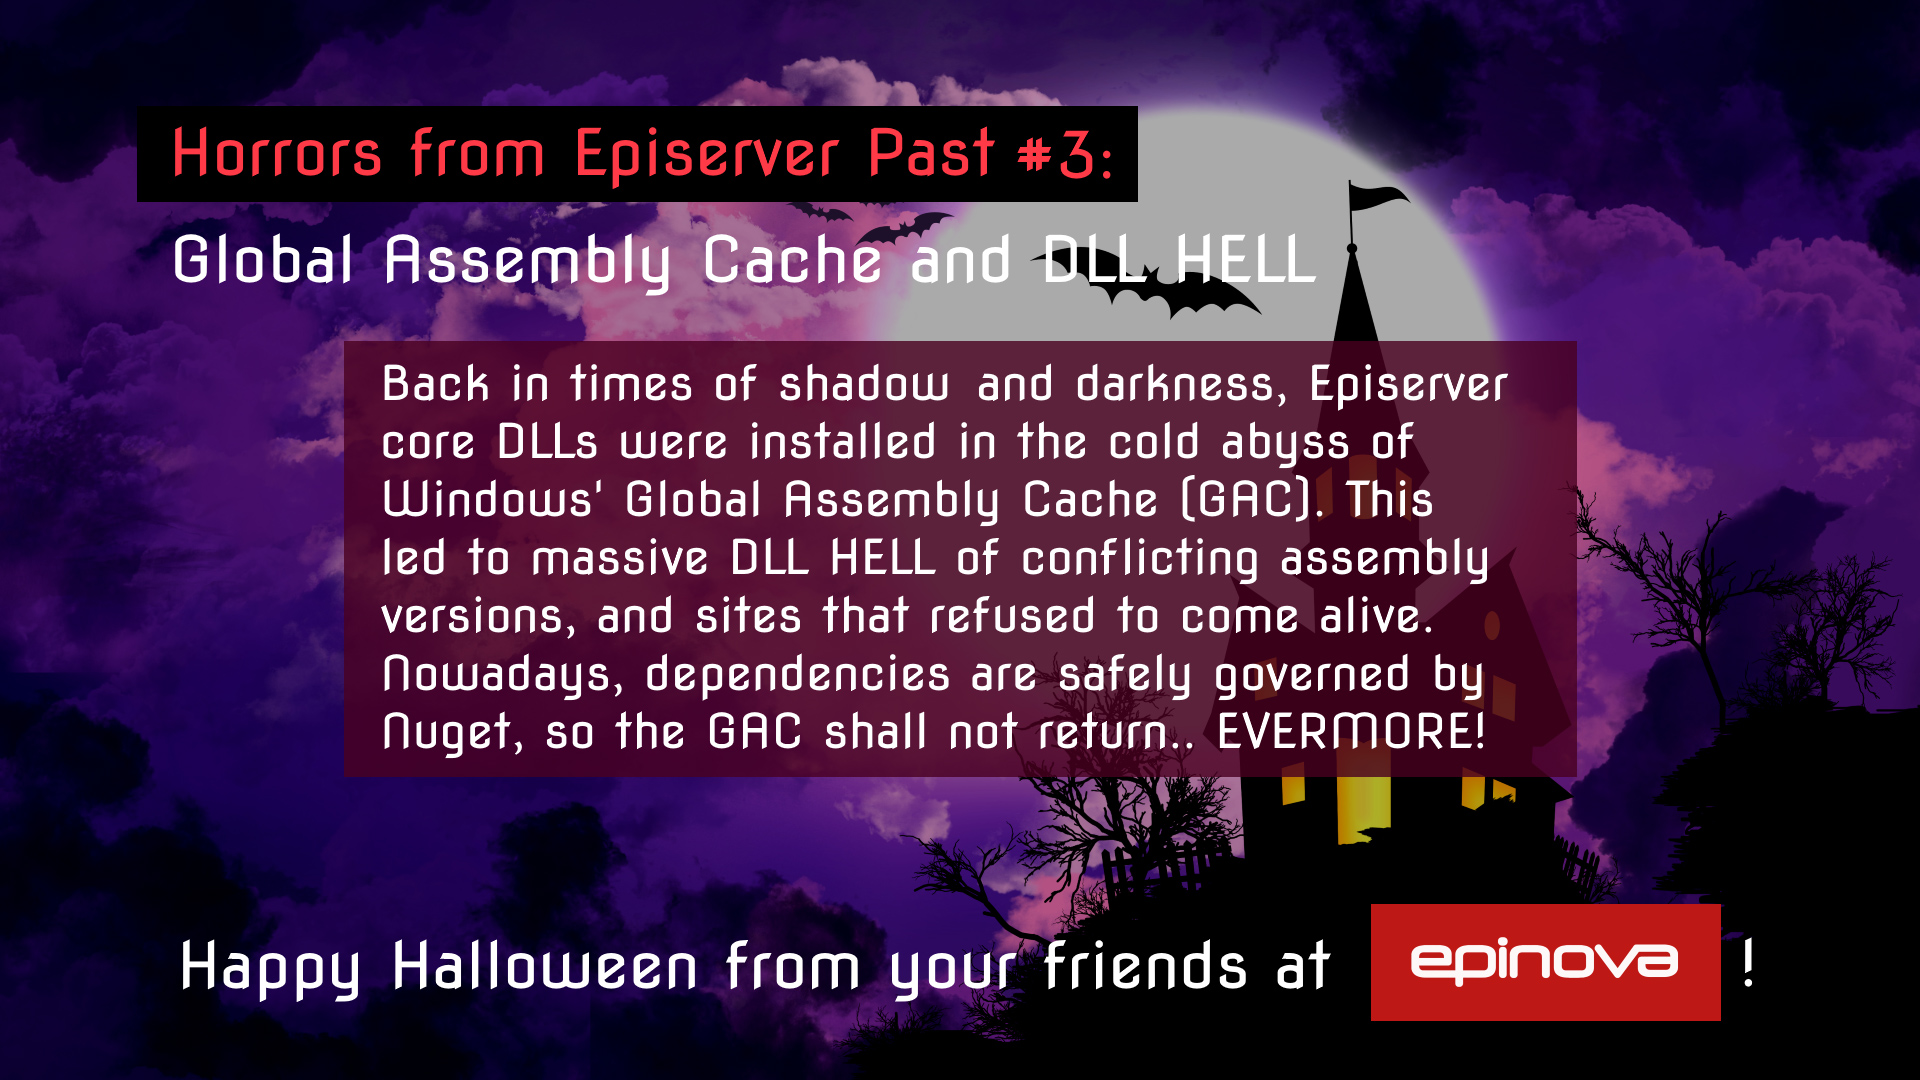 Humorous Halloween throwback to Episerver's GAC DLL hell